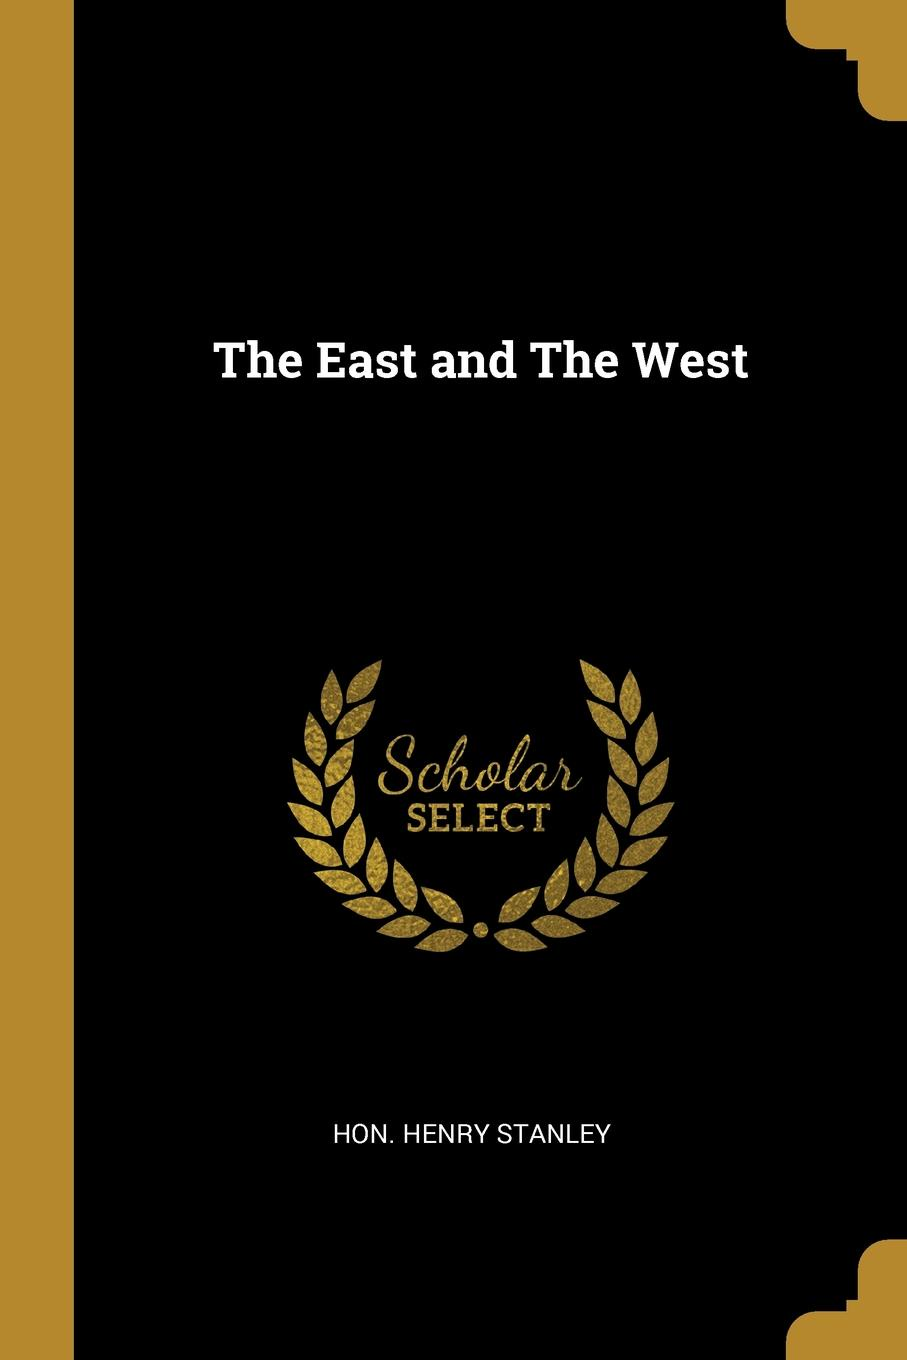 Hon. Henry Stanley. The East and The West